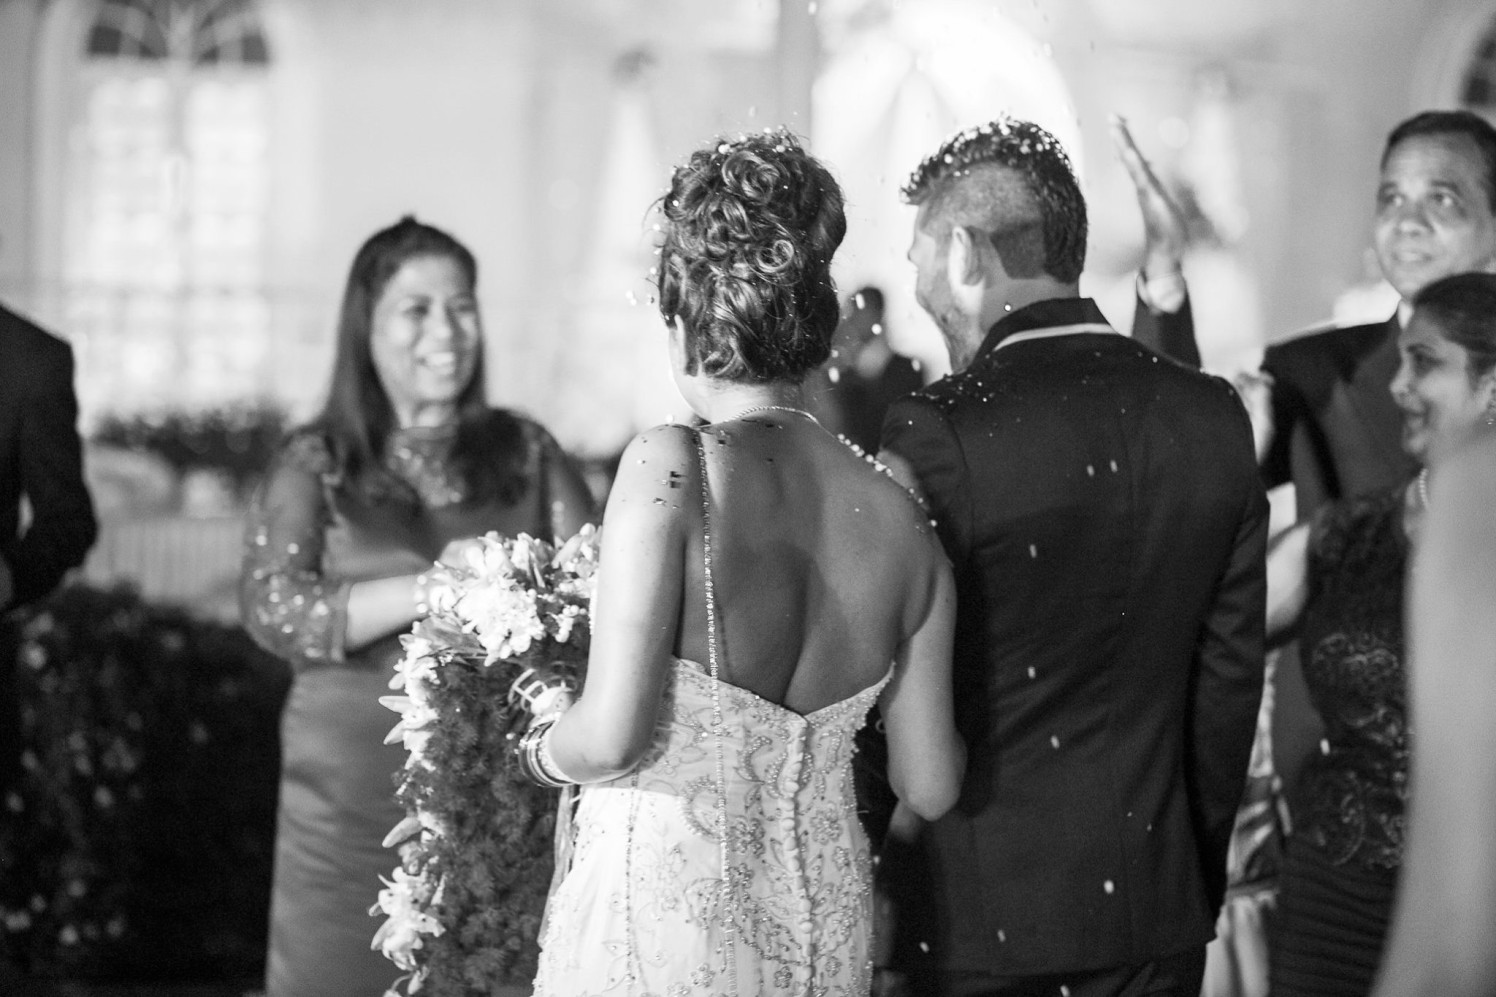 Candid Back Shot Of Christian Bridegroom During A Wedding Ceremony by Terence Savio Pimenta Wedding-photography | Weddings Photos & Ideas